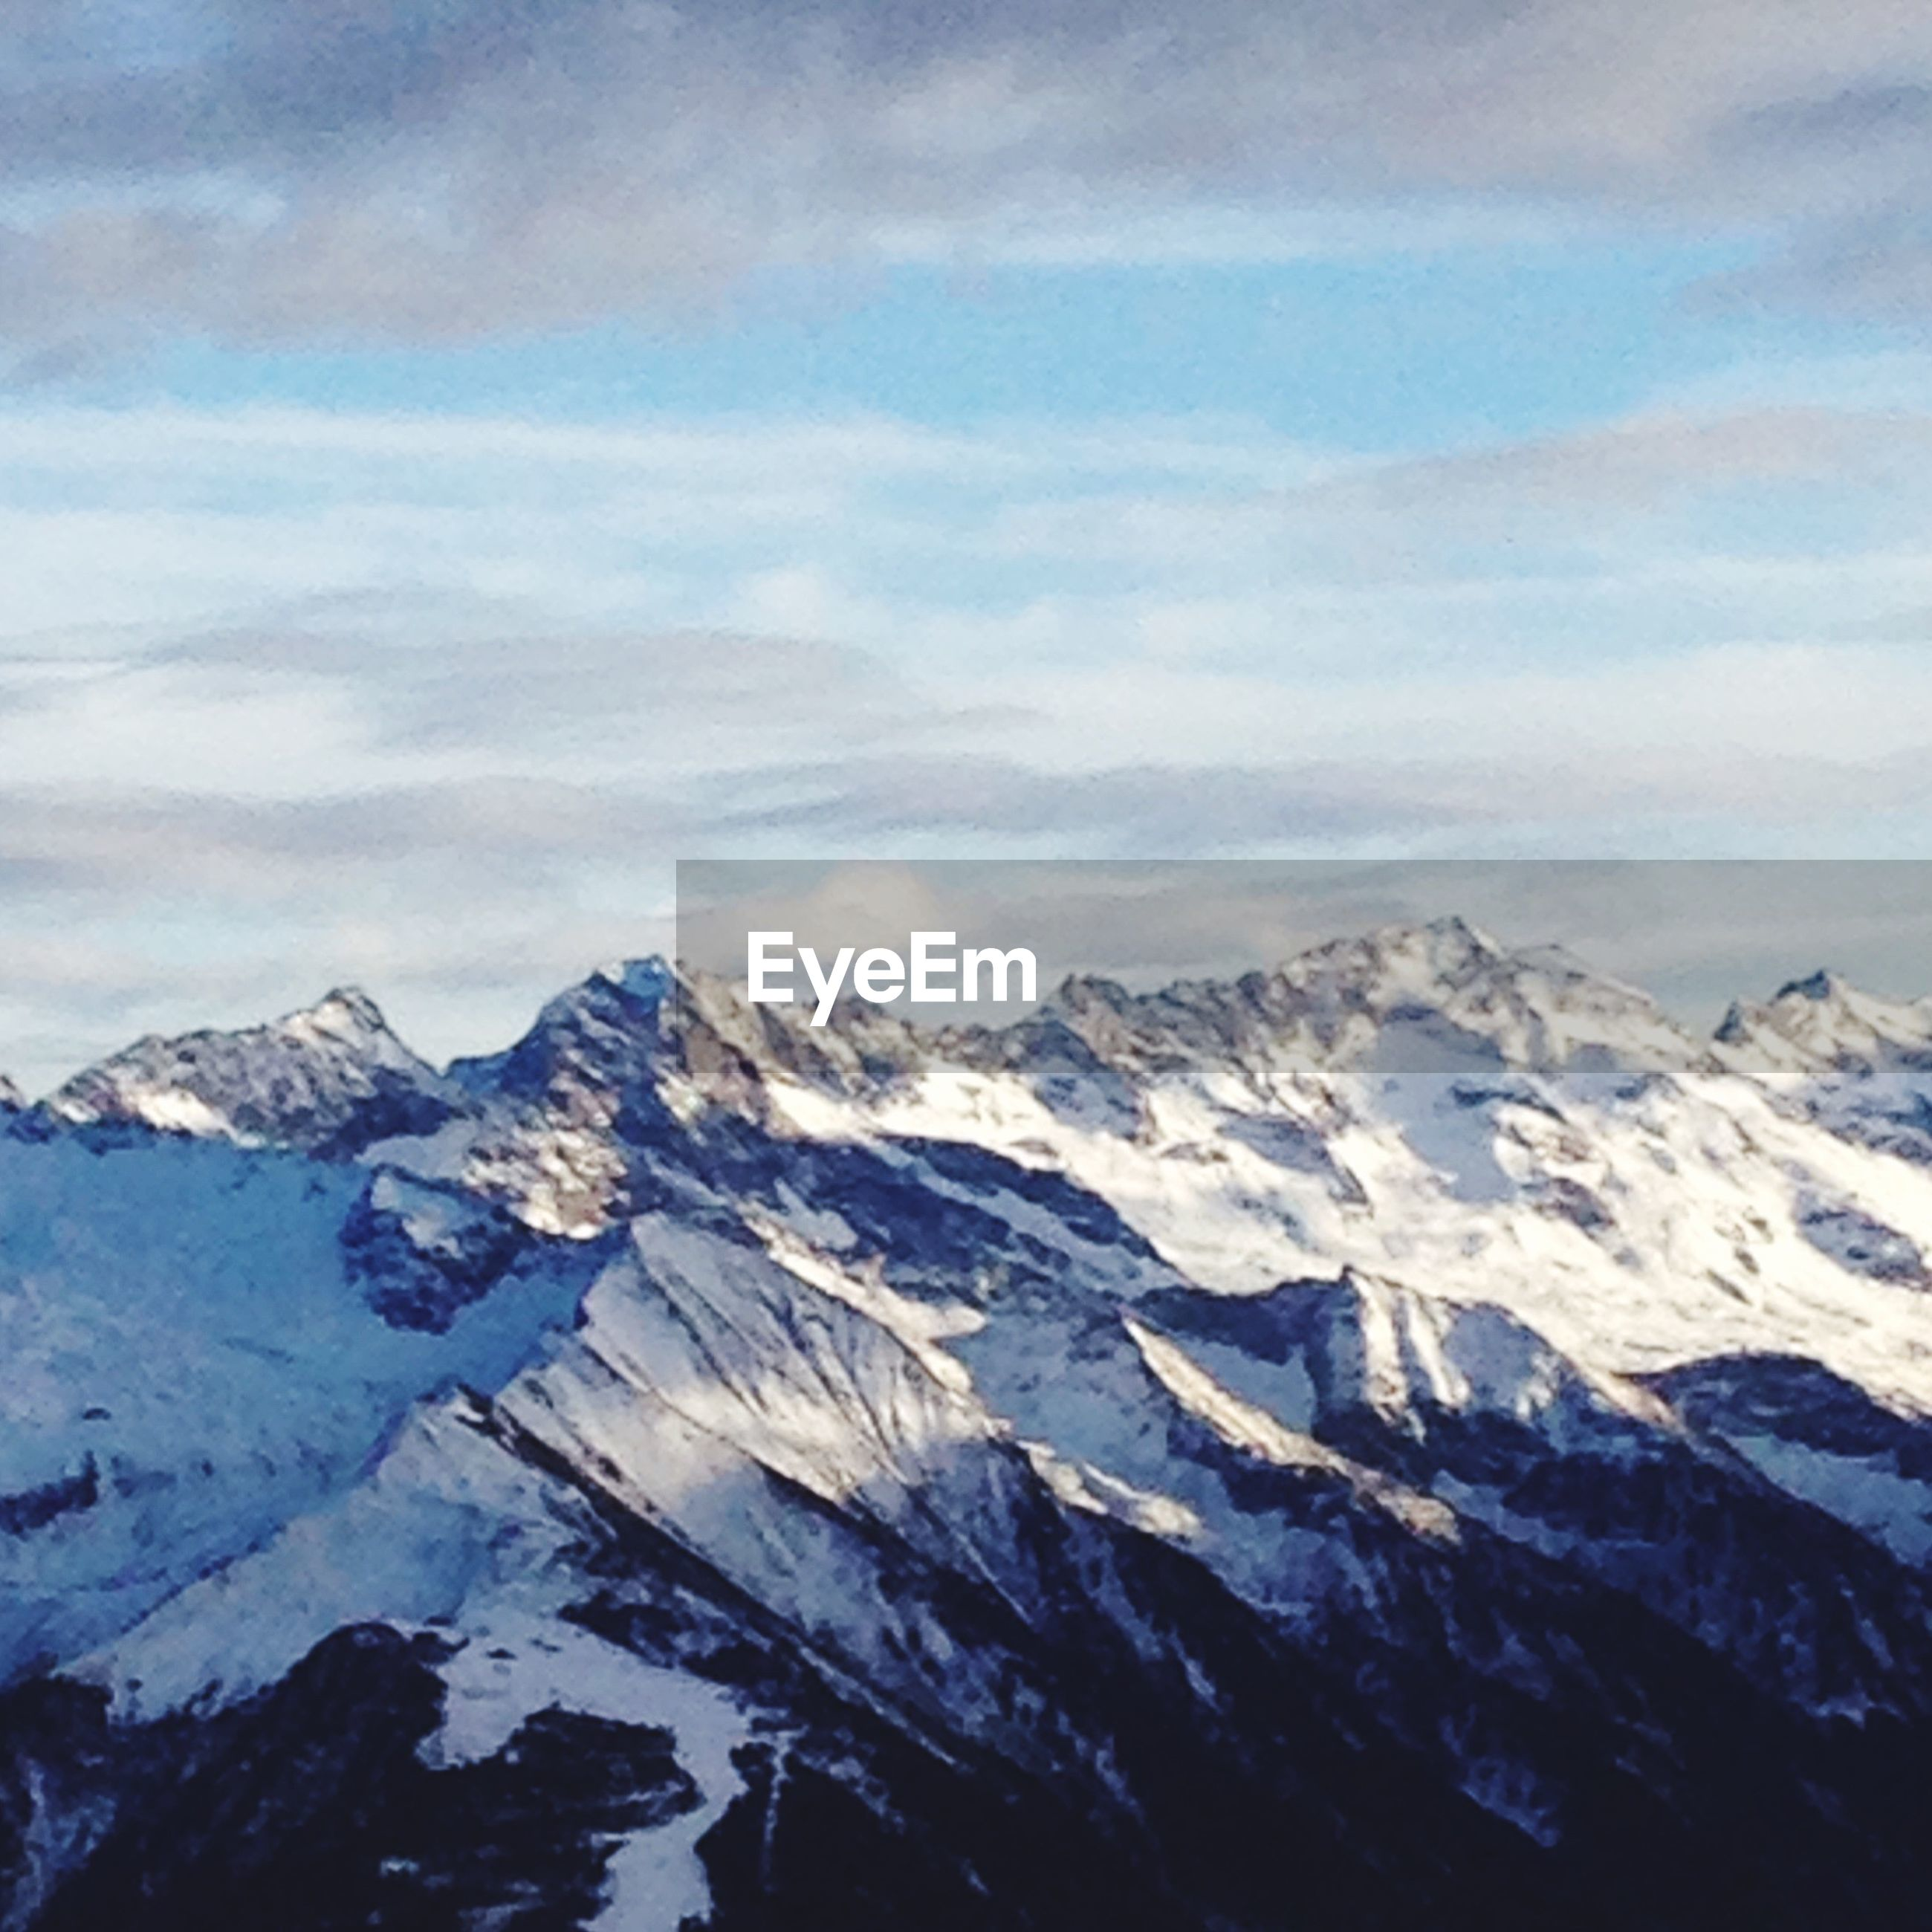 MAJESTIC SNOWCAPPED MOUNTAINS AGAINST SKY